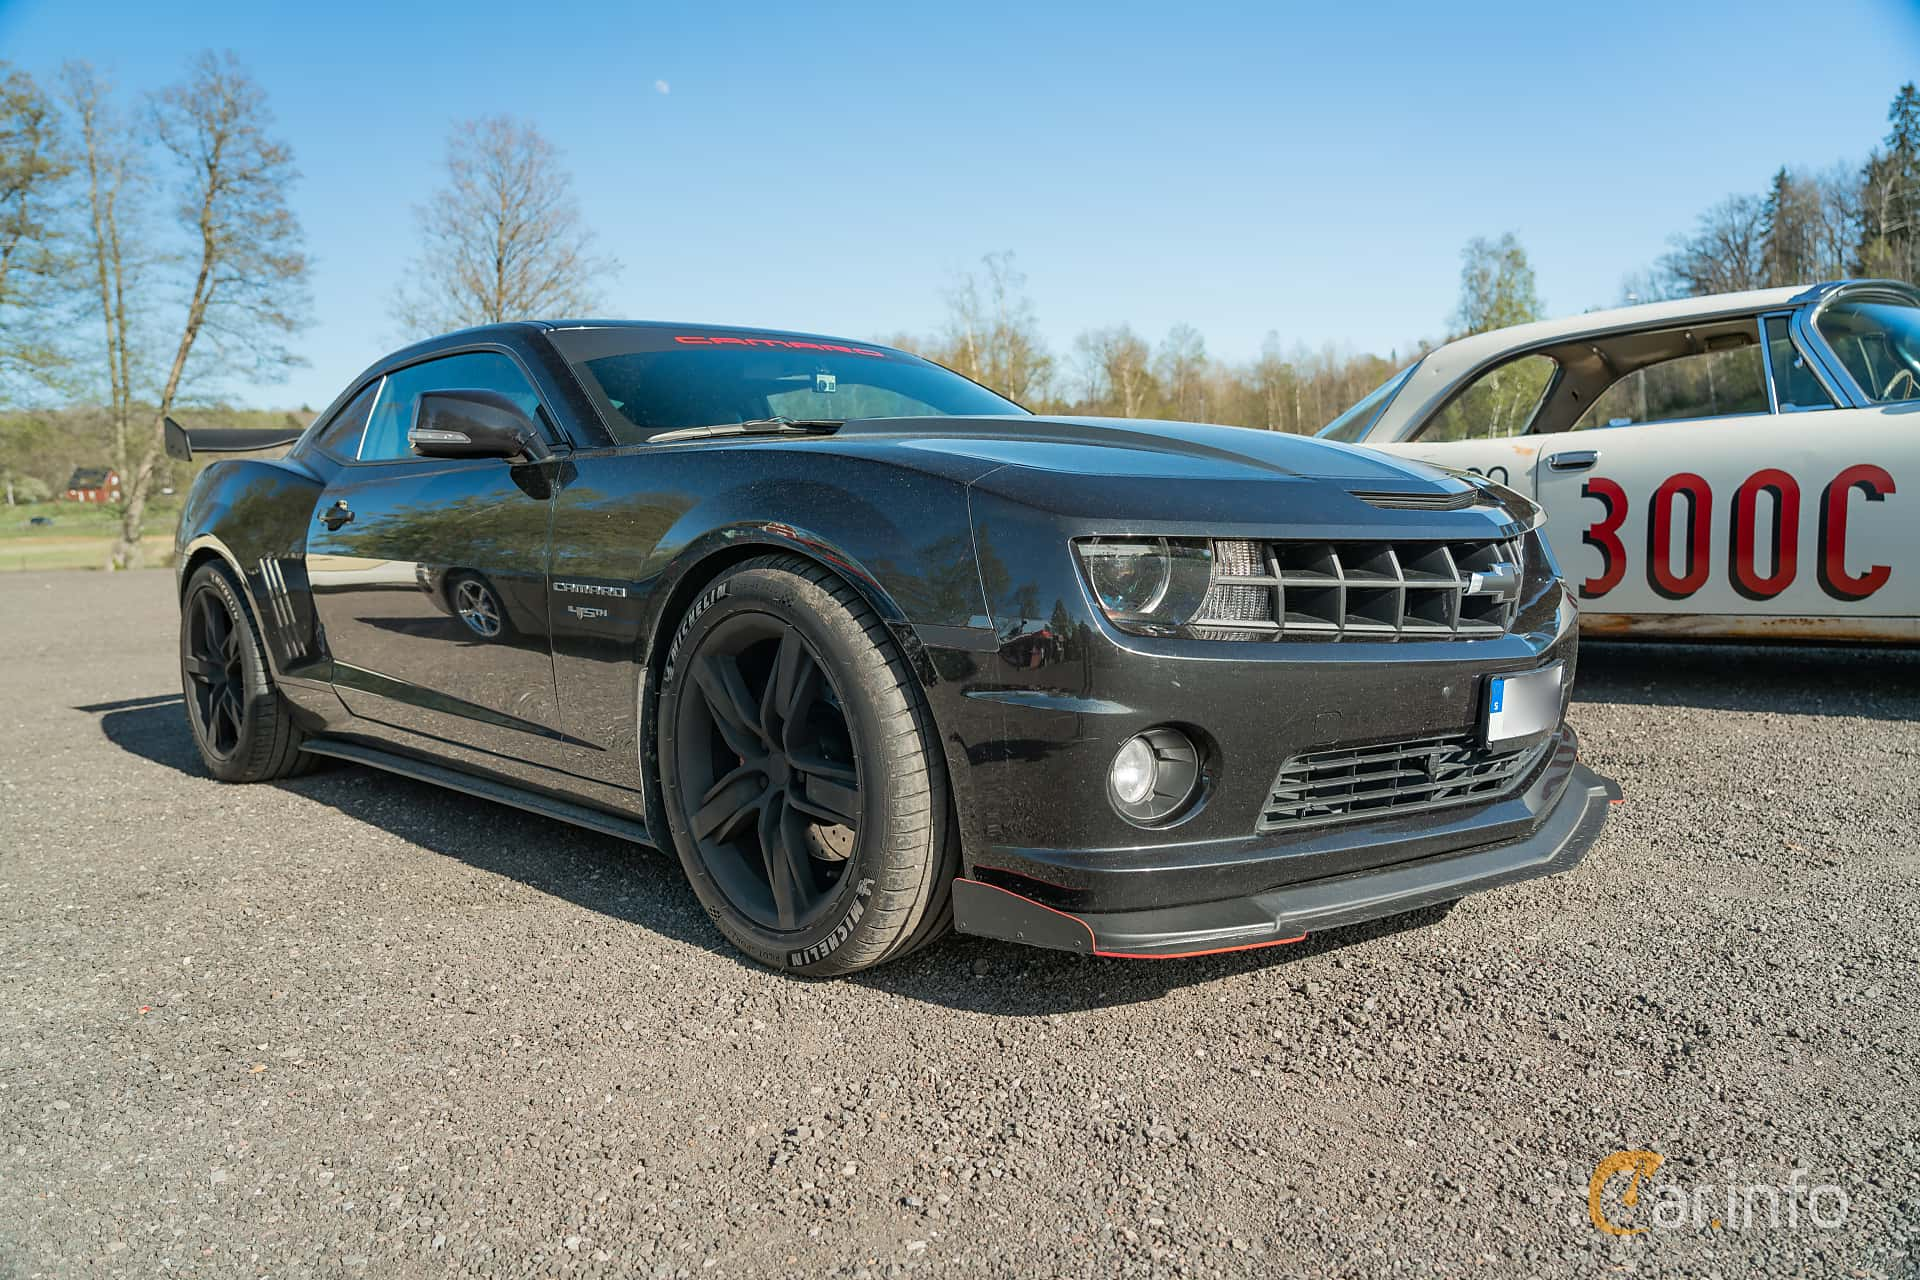 Chevrolet Camaro SS 6.2 V8 Automatic, 405hp, 2012 at Lissma Classic Car 2019 vecka 20